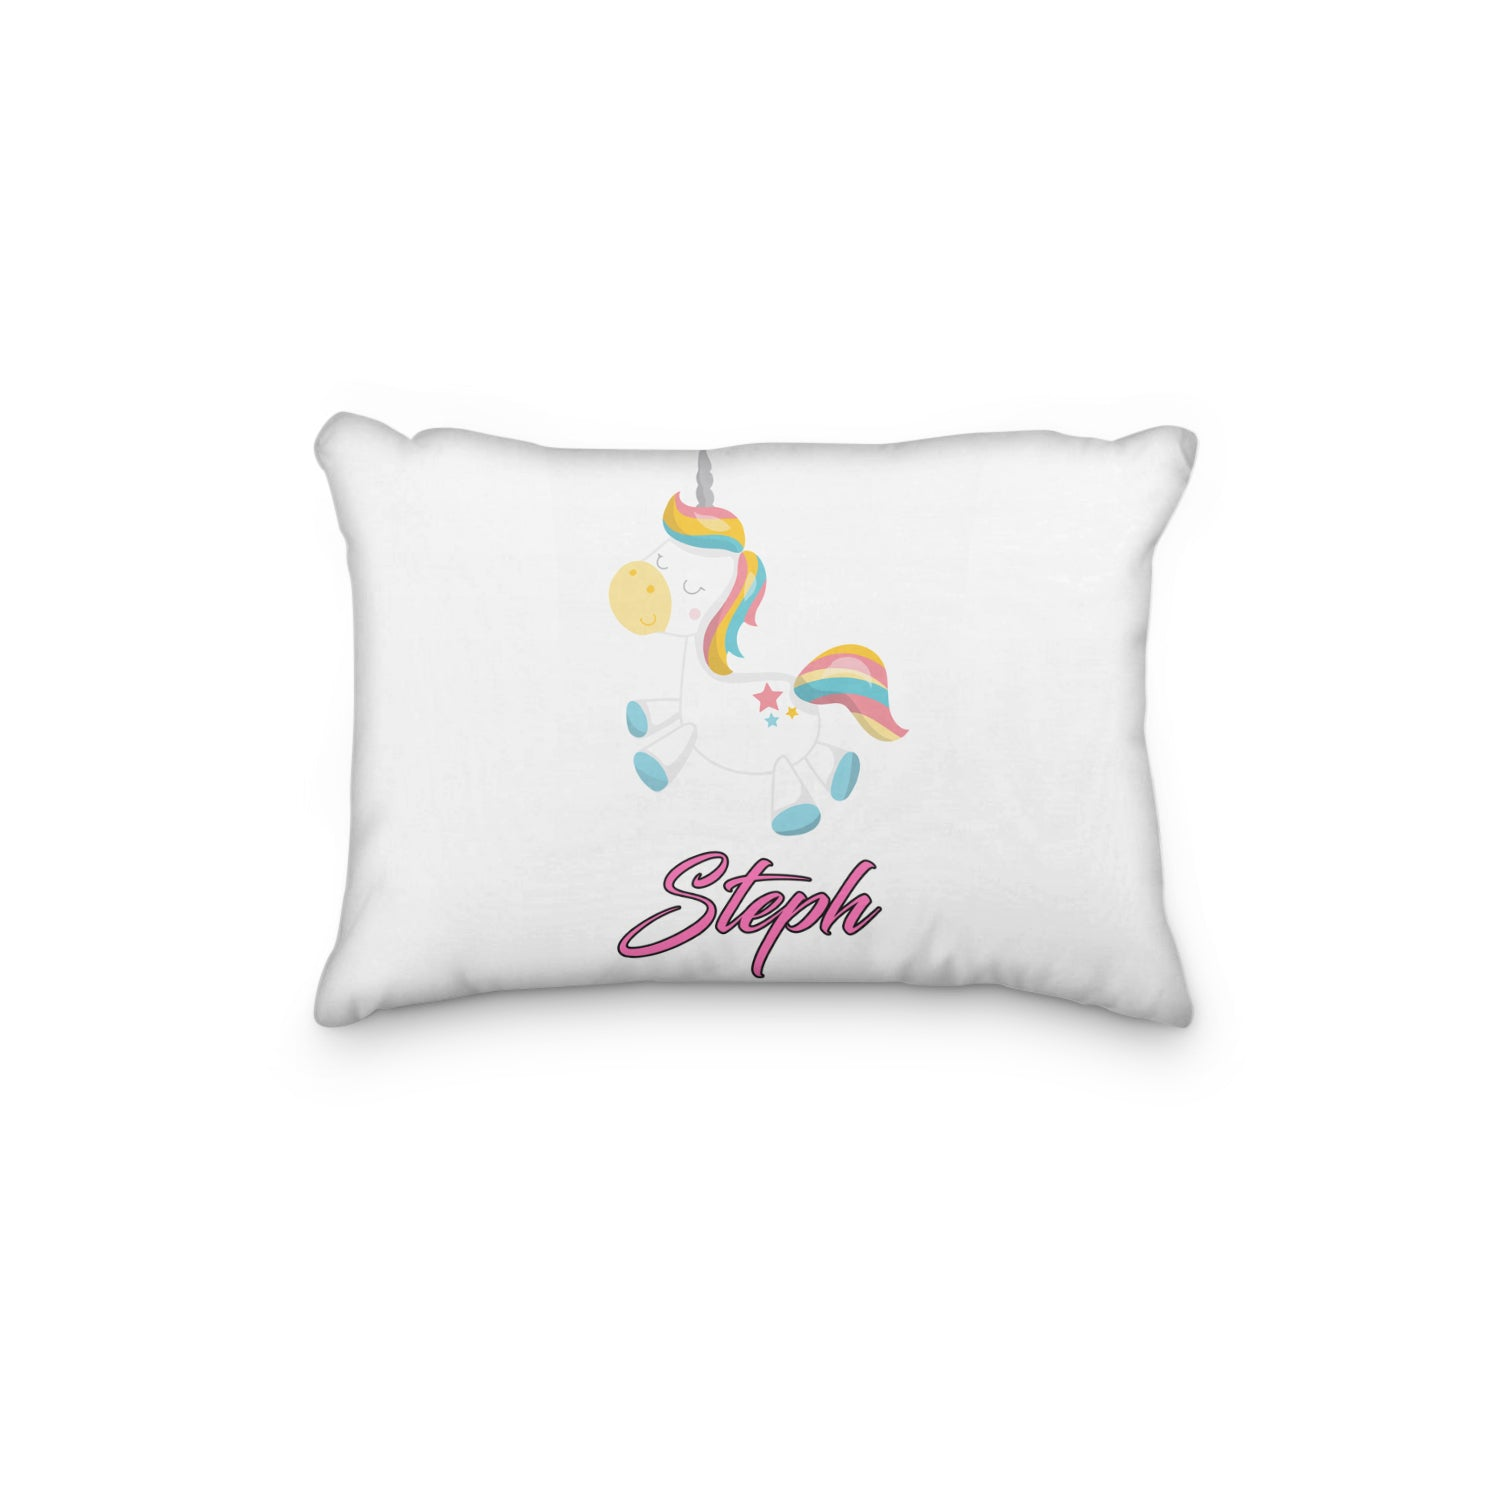 Unicorn Dreamy Bedtime Personalized Pillowcase - Incandescently